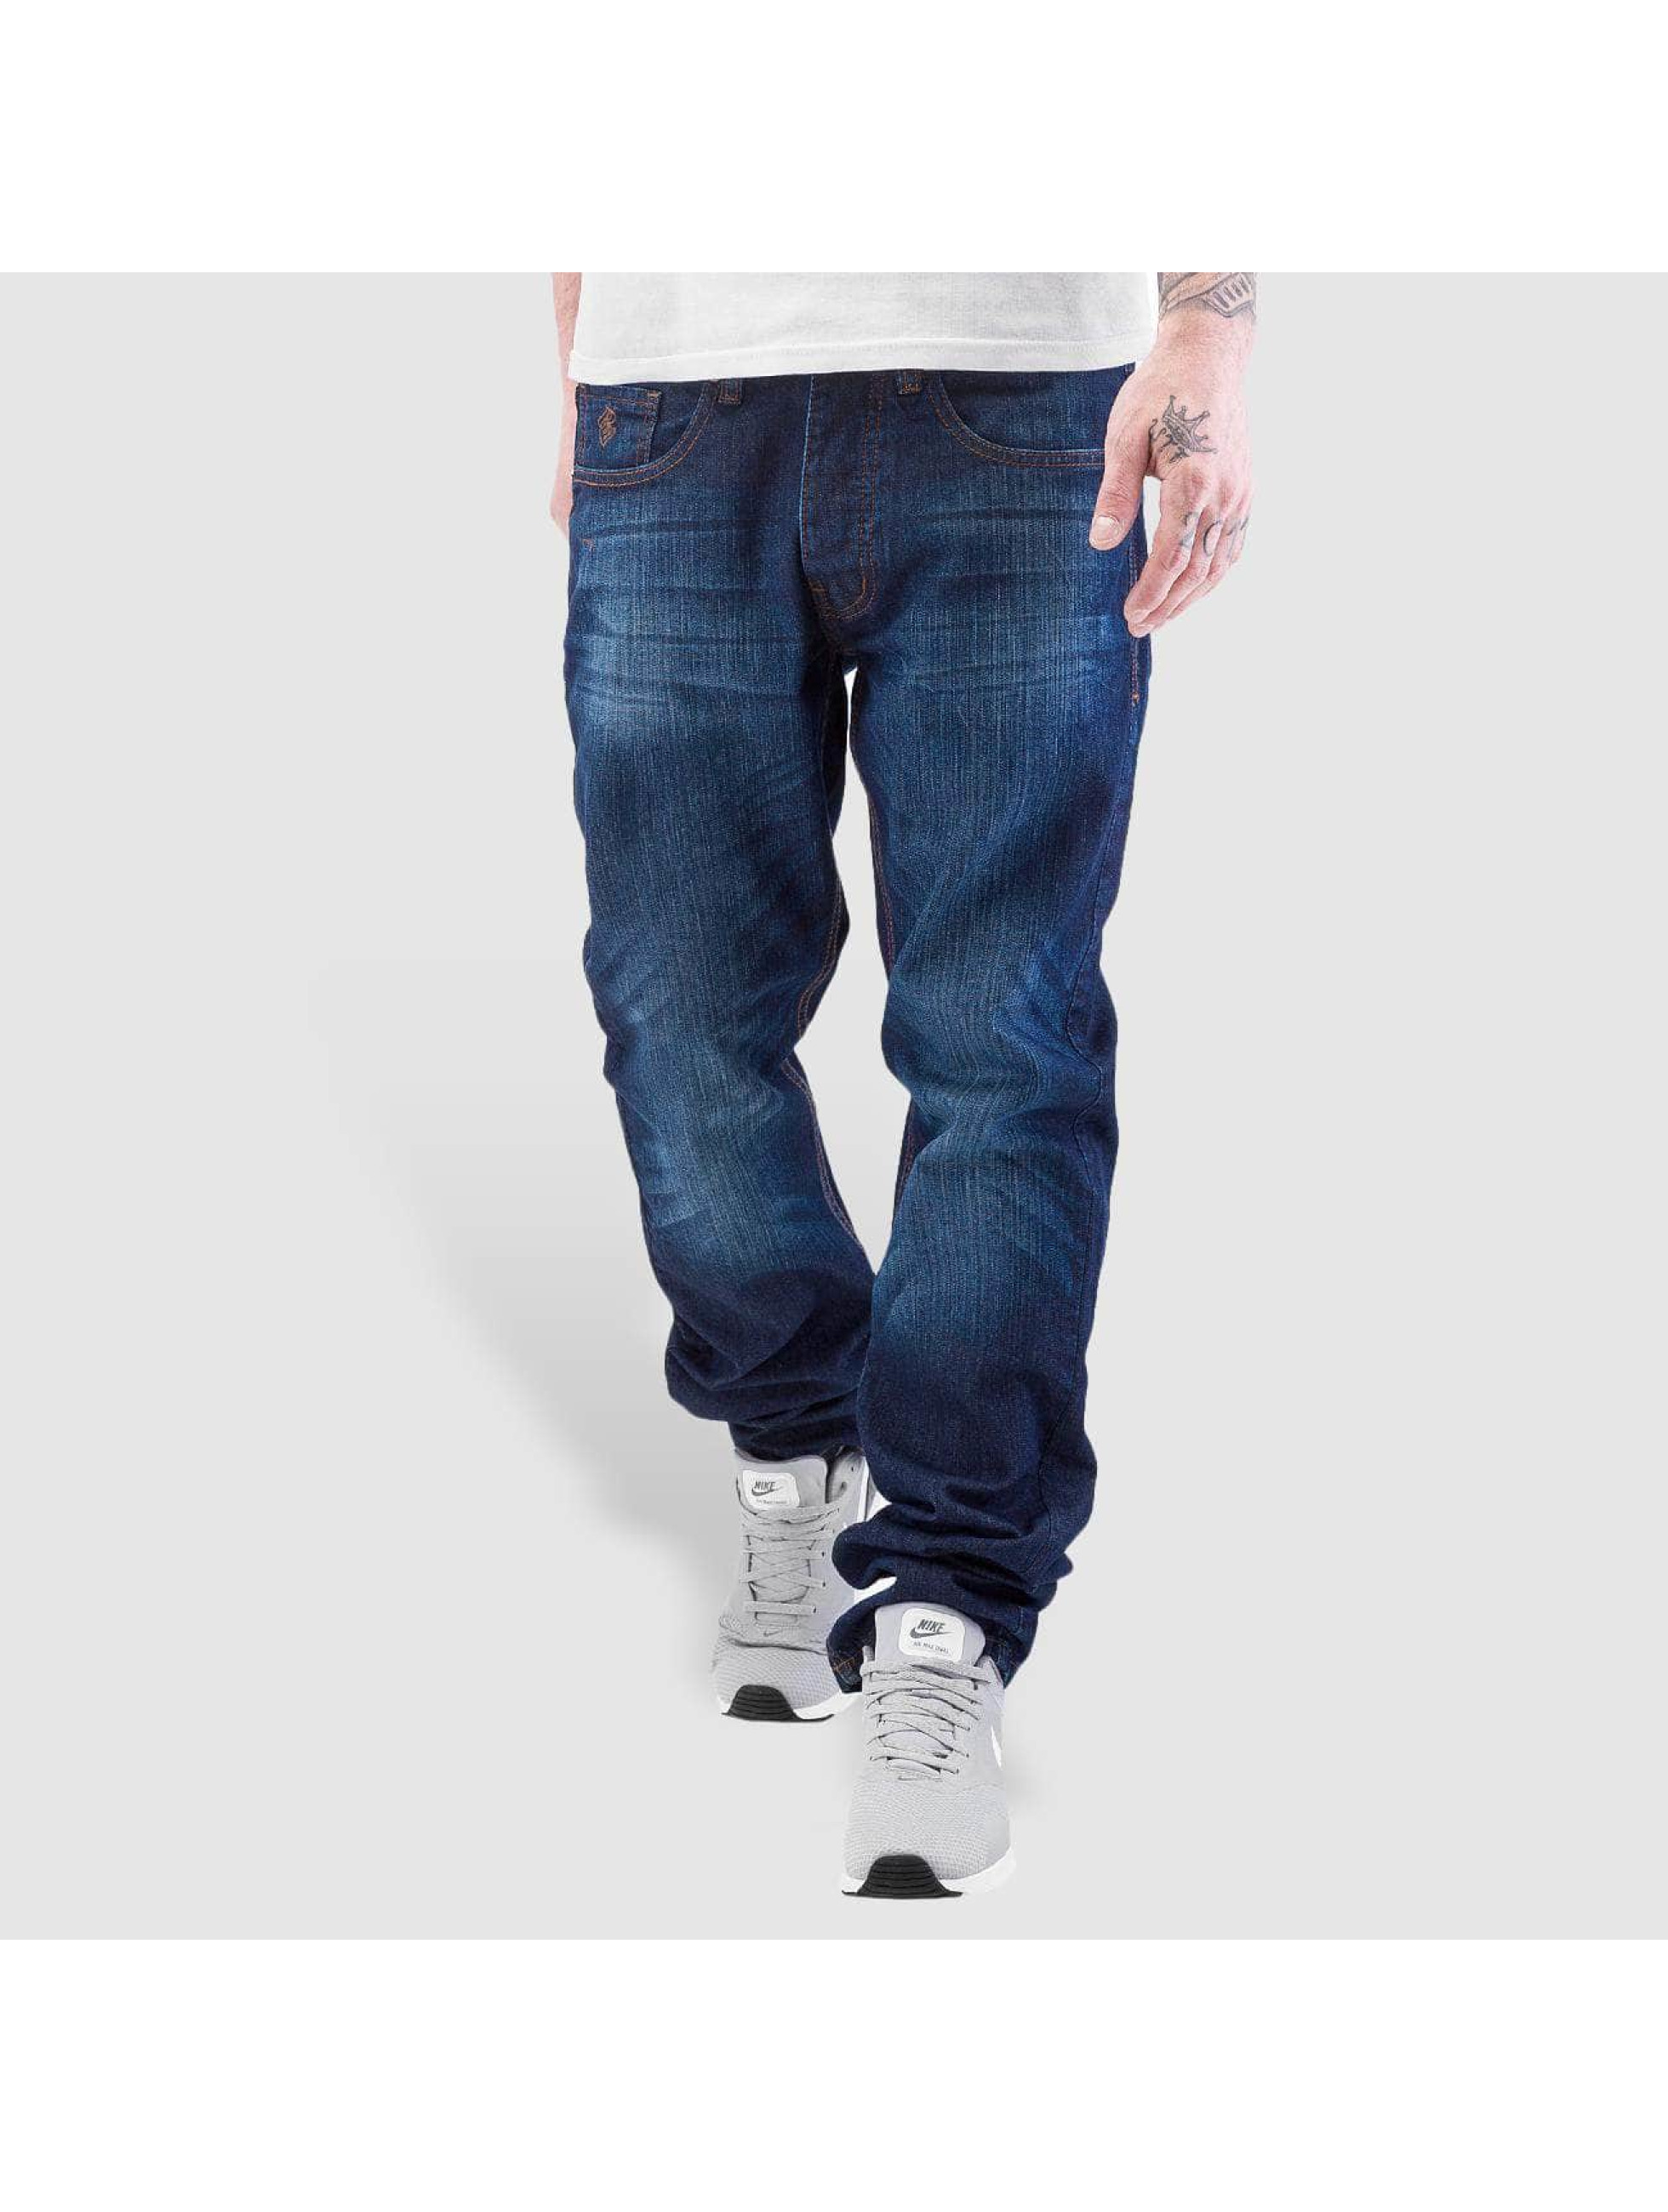 Rocawear / Straight Fit Jeans Leather Patch Relaxed in blue W 33